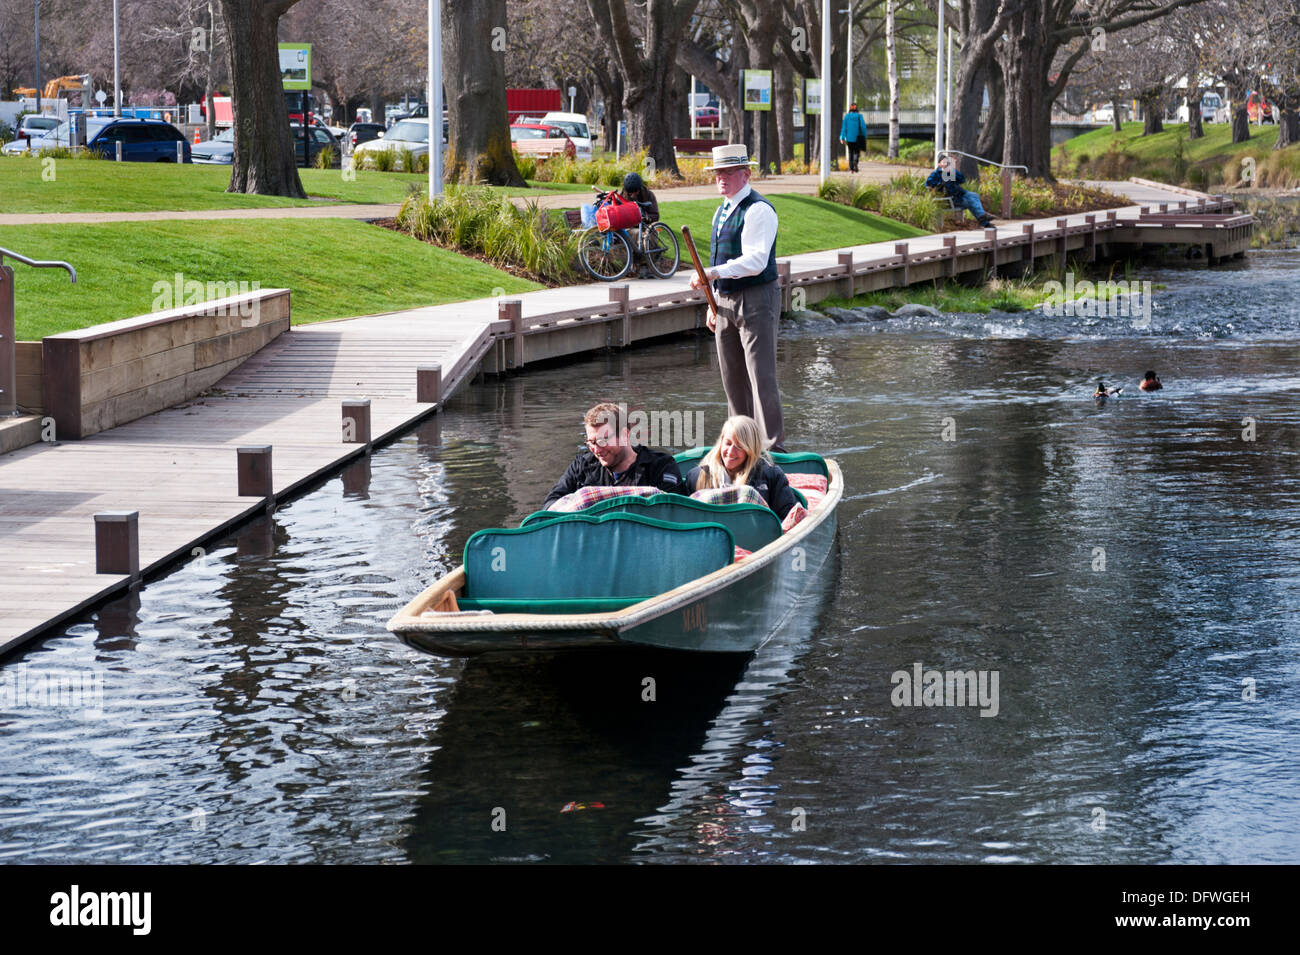 Christchurch, South Island, New Zealand. Traditional punting on the Avon River. - Stock Image